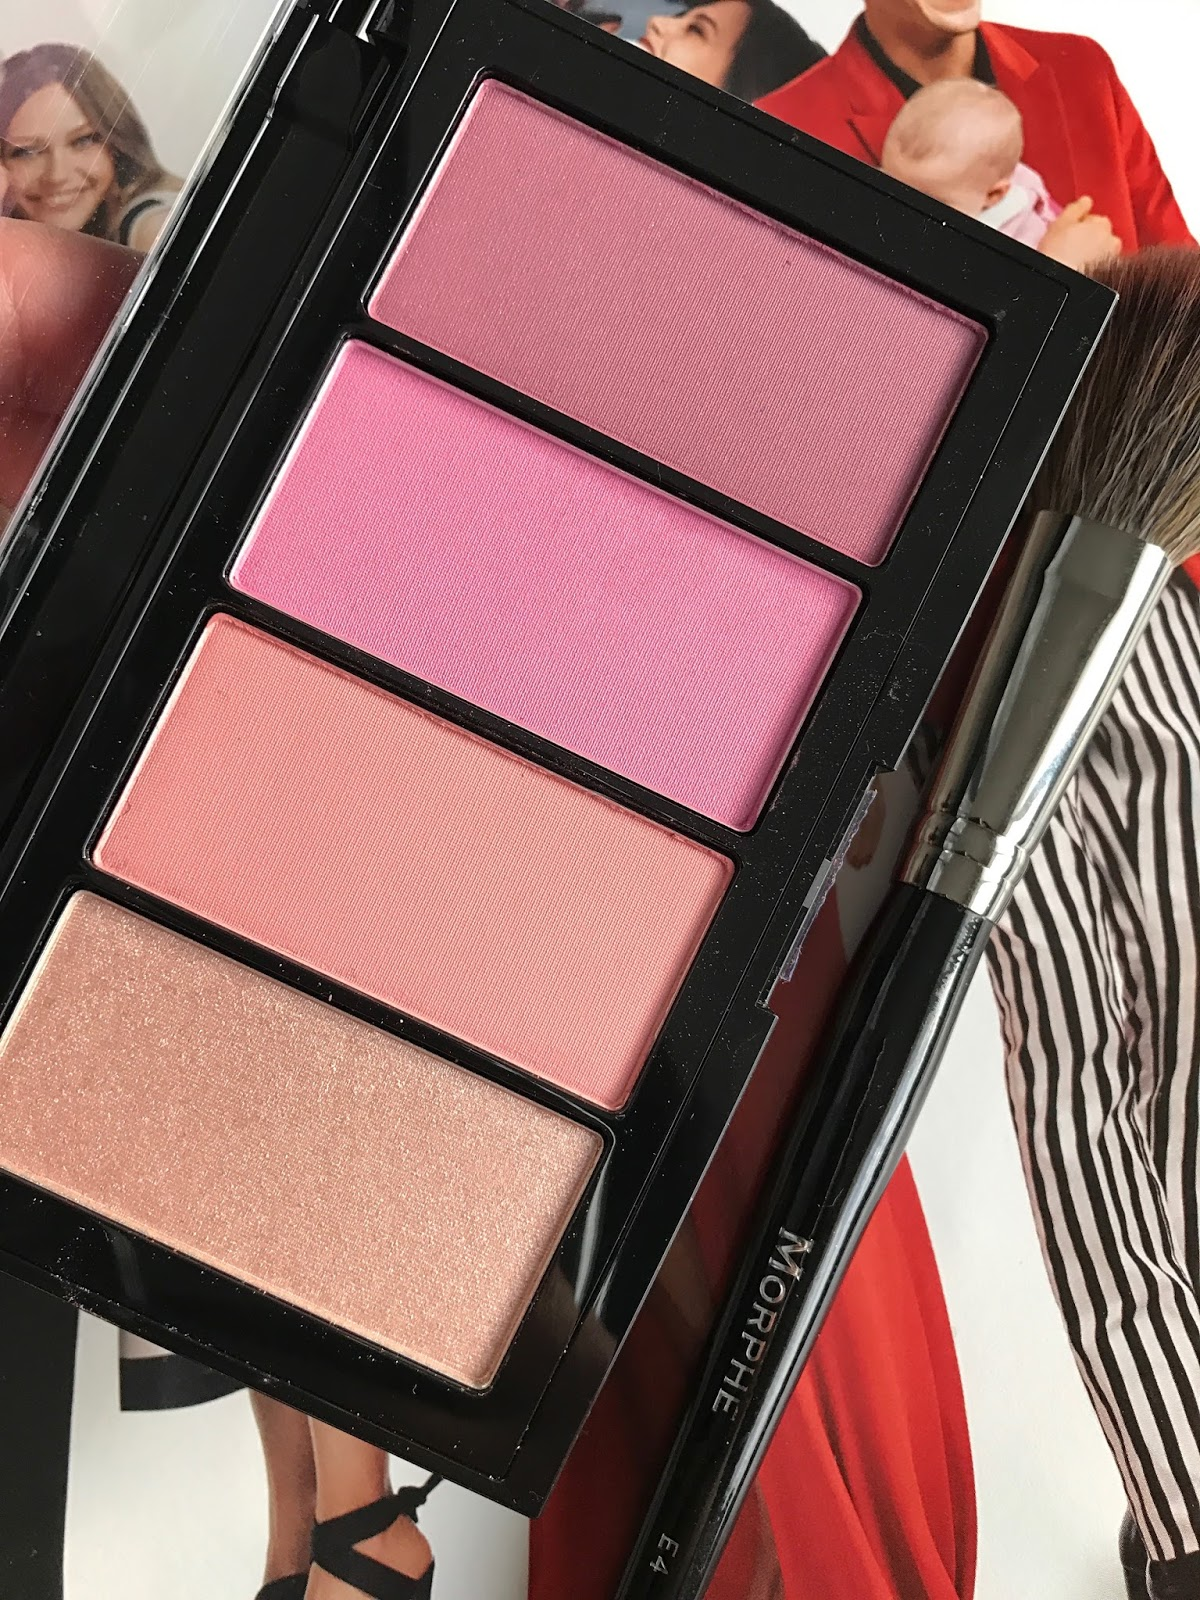 maybelline master blush color and highlight kit review